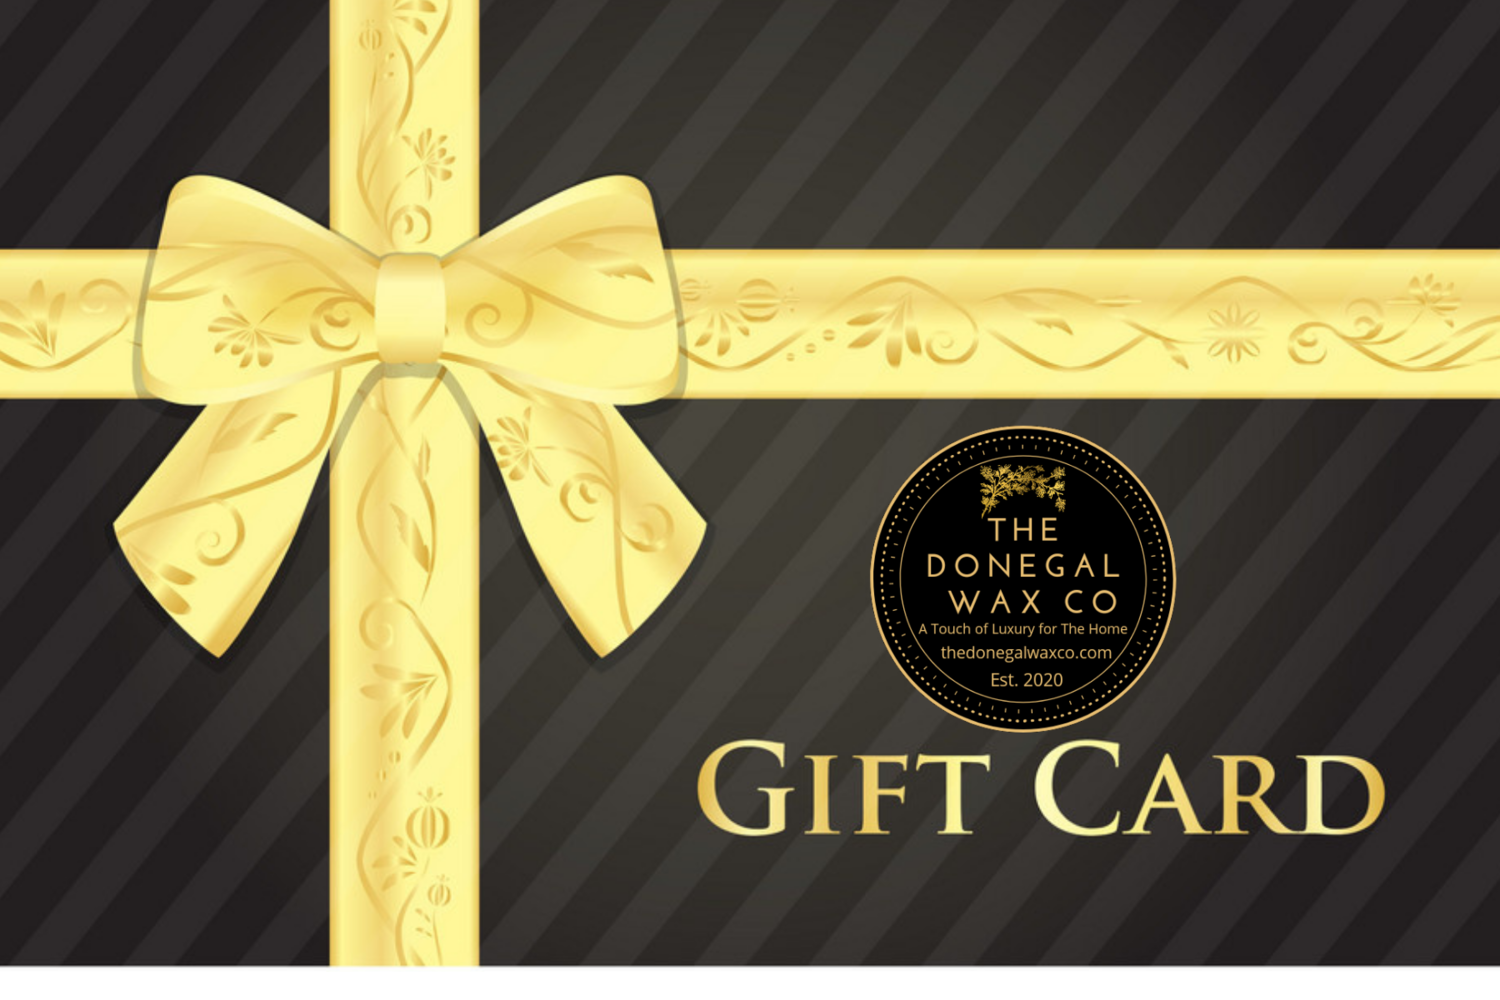 The Donegal Wax Co Giftcard